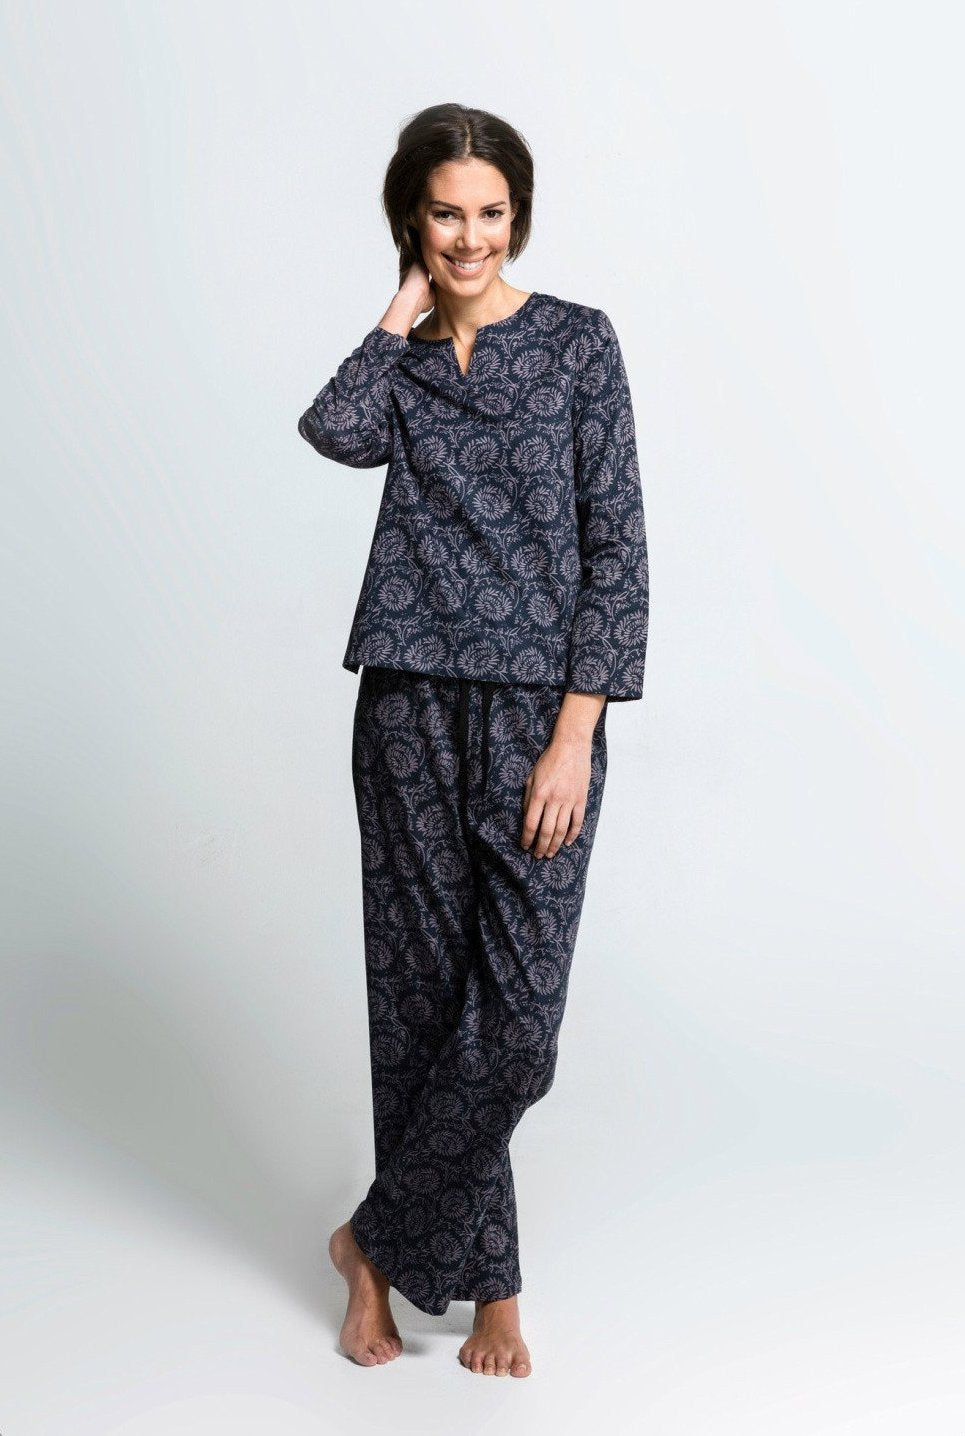 Women's Ethical Organic Cotton Black Pyjamas